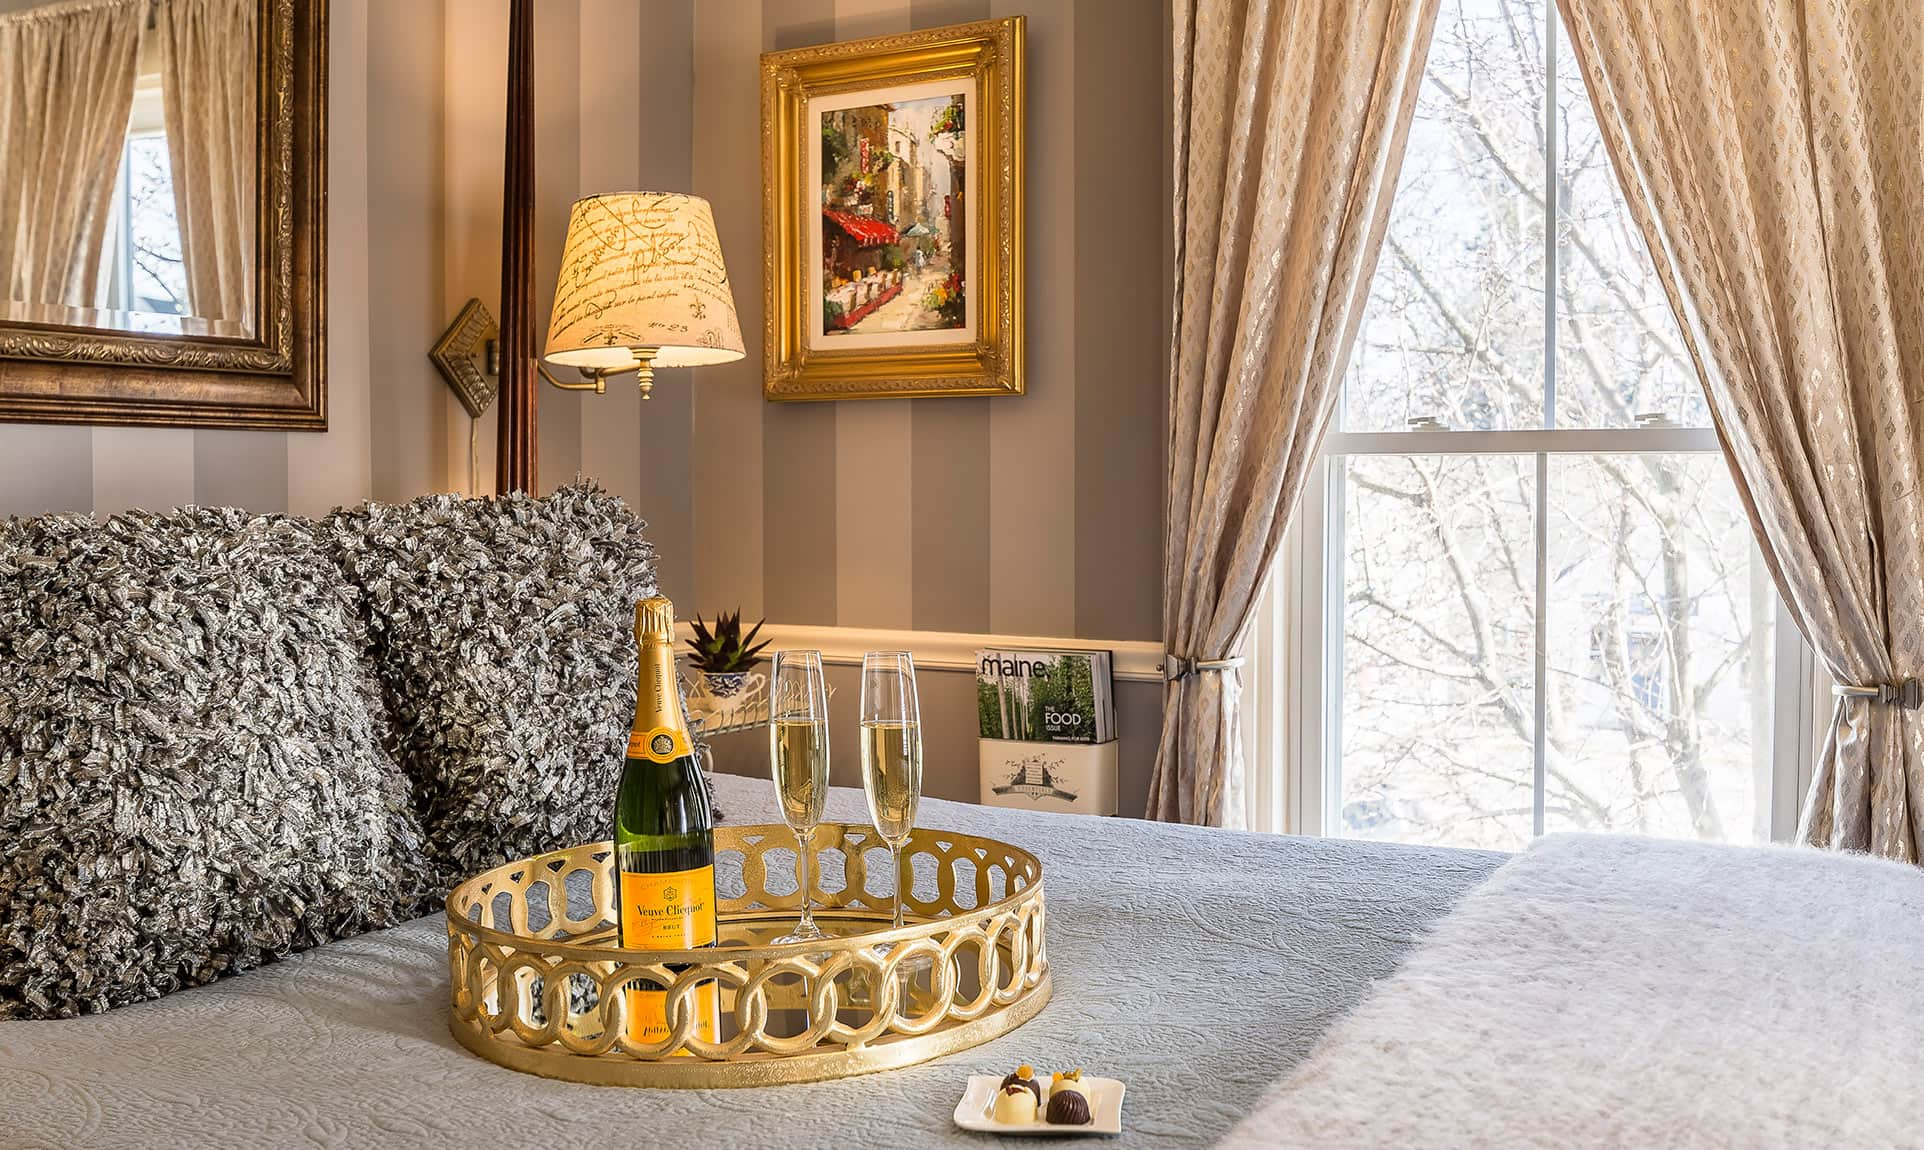 Champagne bottle and glasses on bed